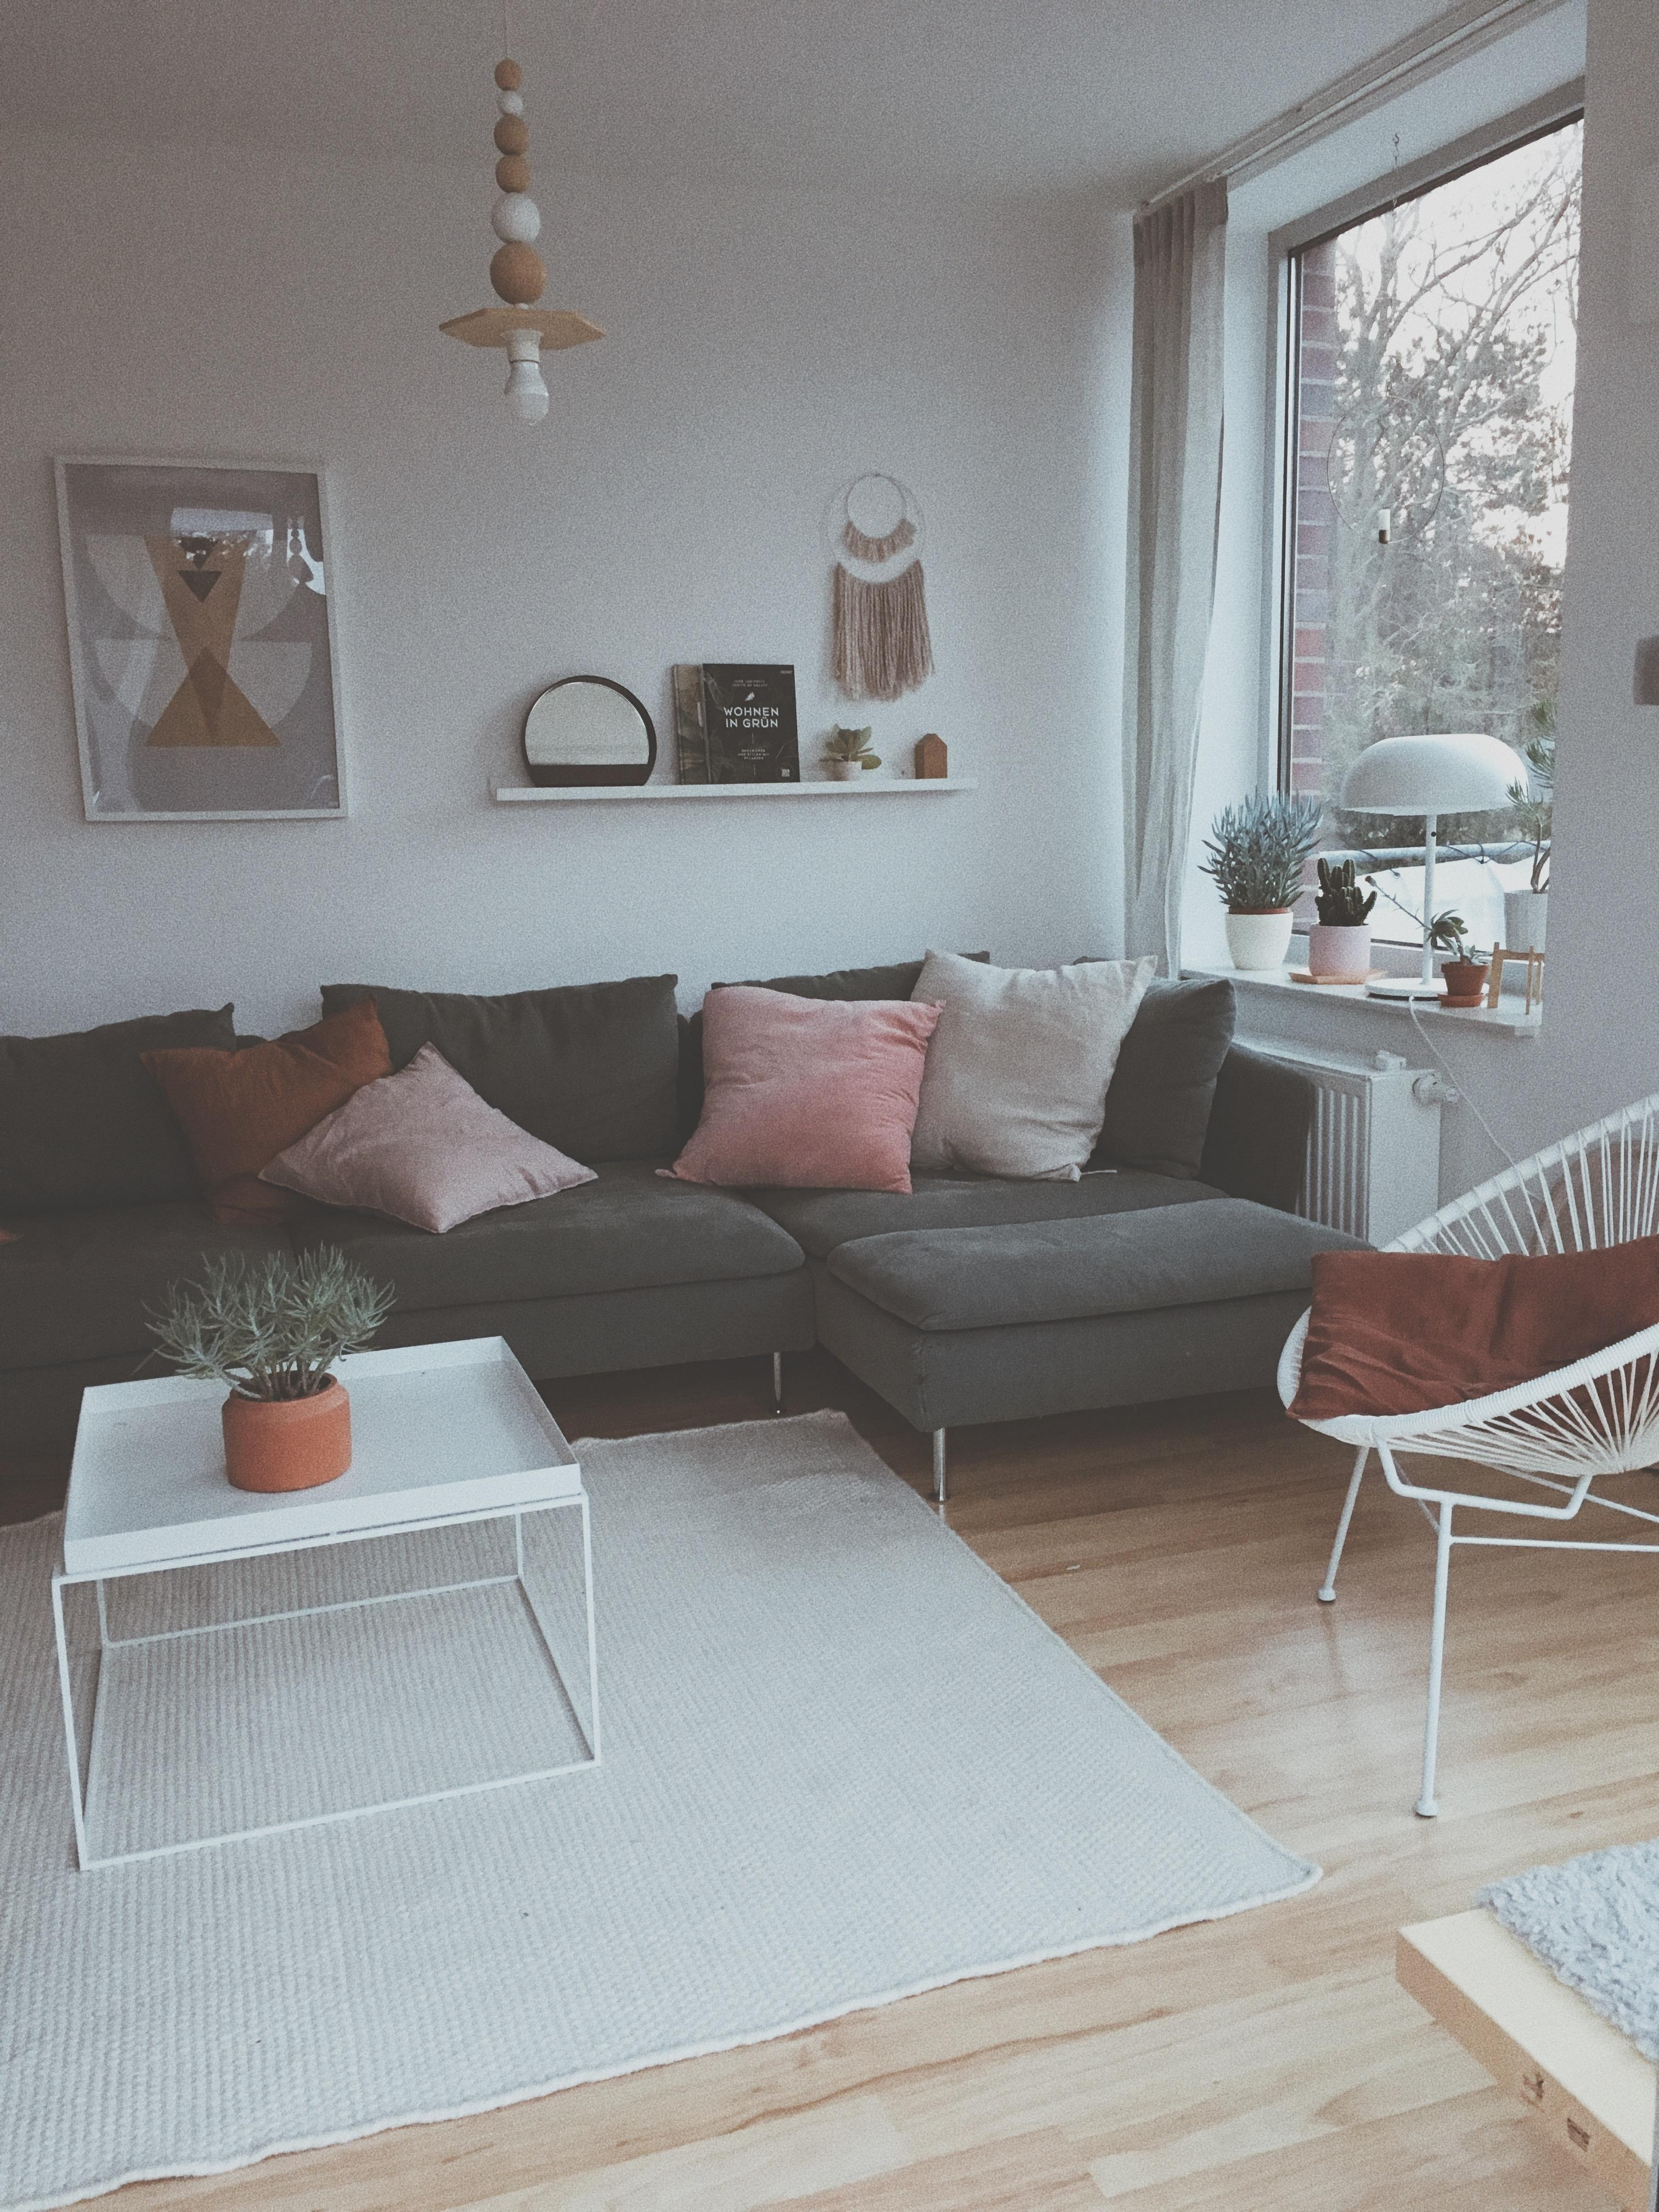 #skandistyle #couchliebt #livingroom #cozyroom #hygge #nordichome